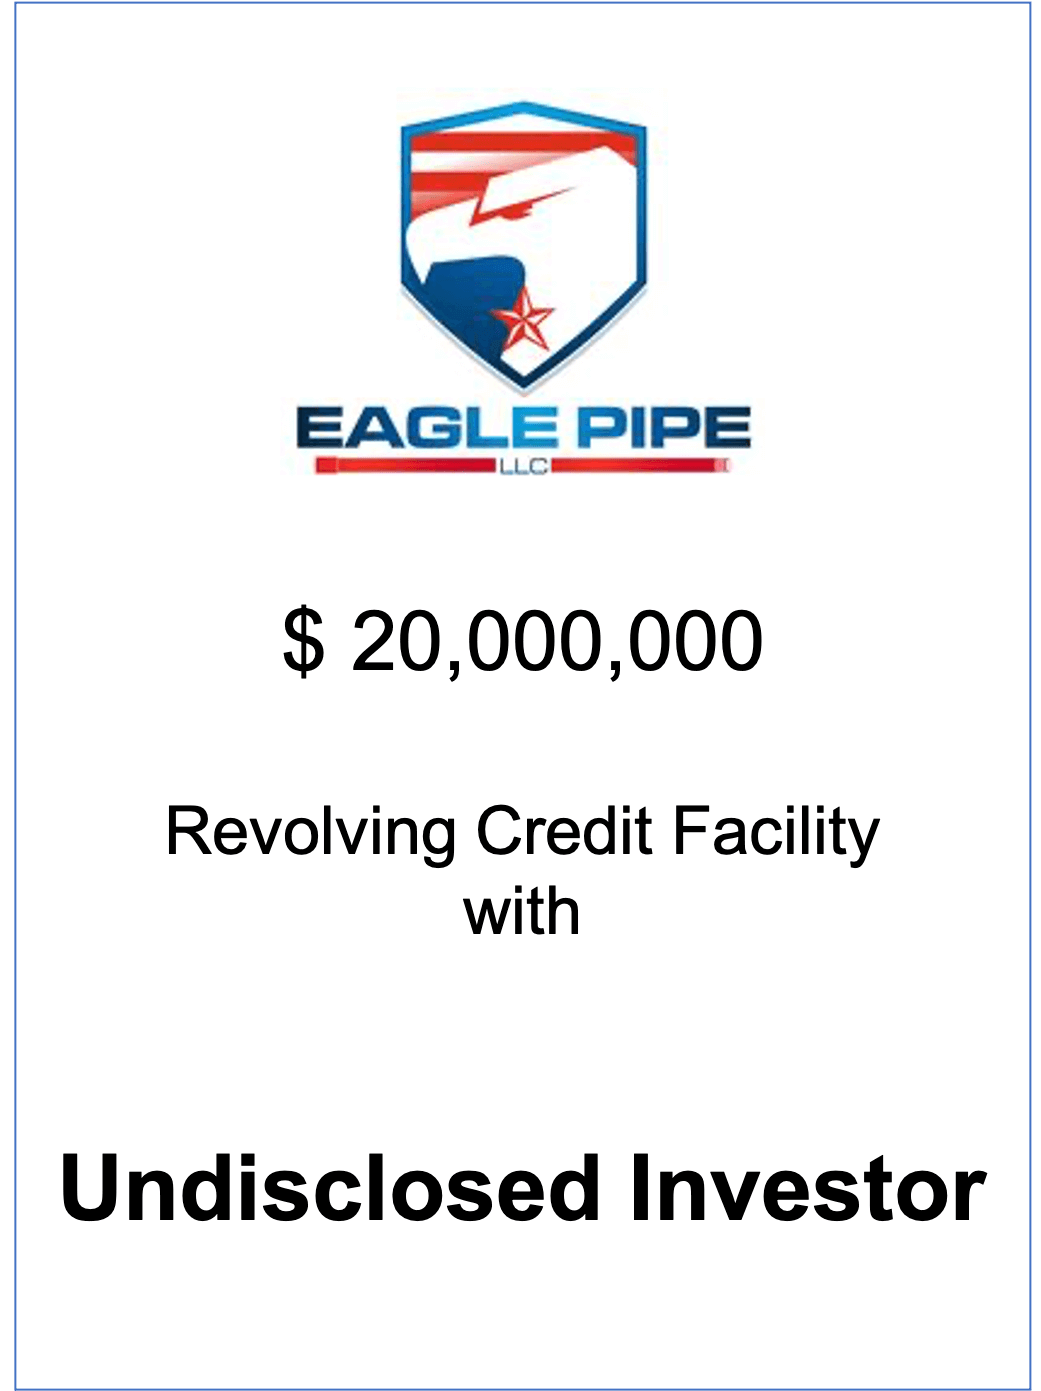 NorthView represents Eagle Pipe for a second time